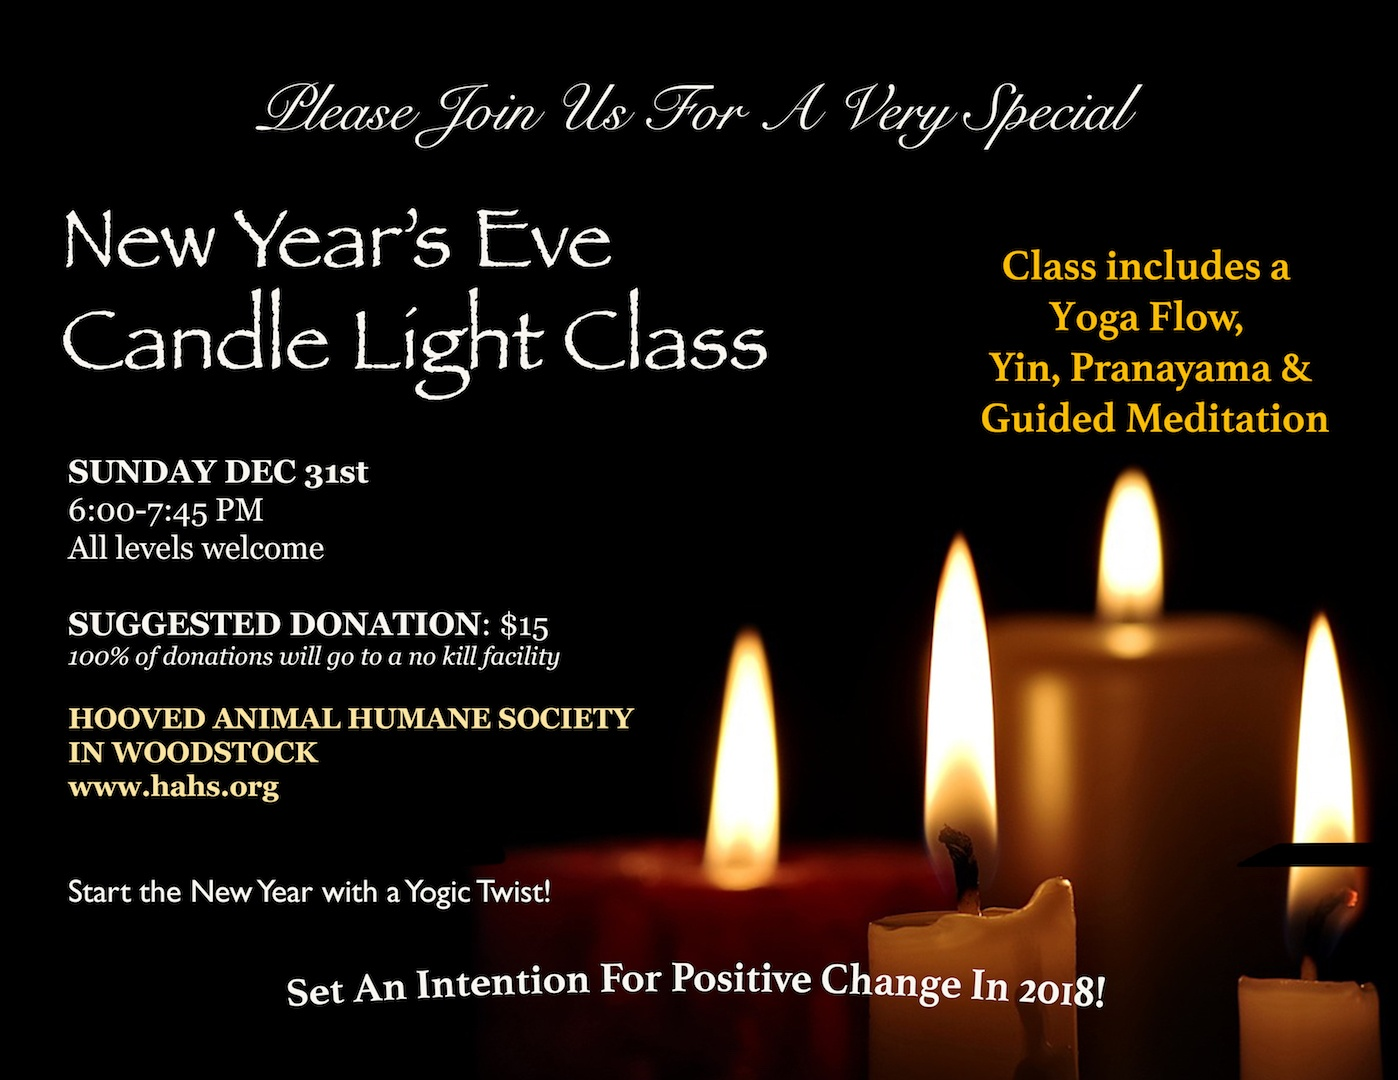 aec041c8f87c New Year's Eve Candle Light Yoga   Give To A Good Cause   Hot Yoga ...